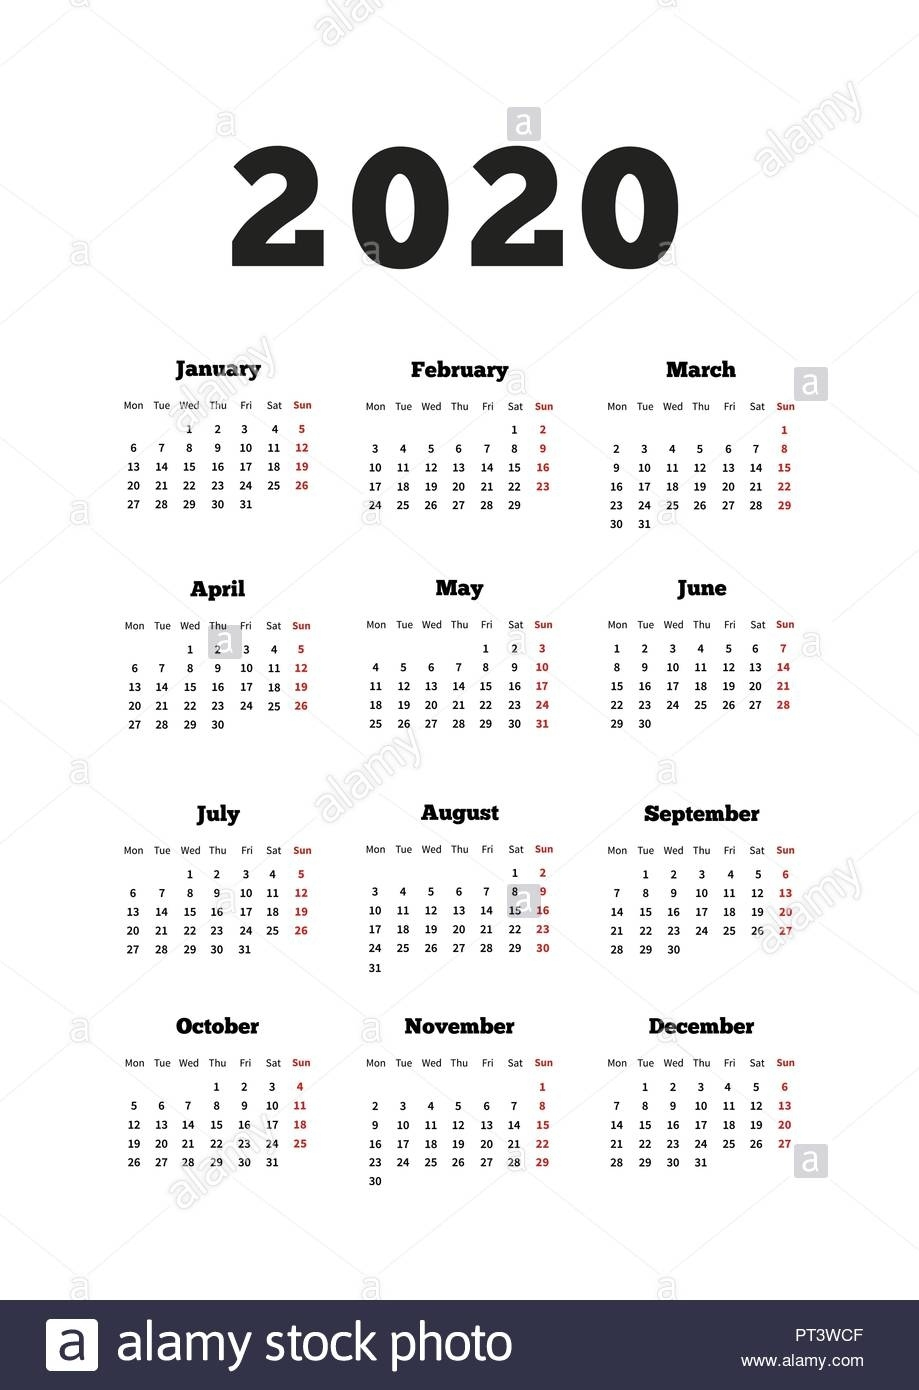 Calendar On 2020 Year With Week Starting From Monday, A4 Size 2020 Calendar Starting On Monday